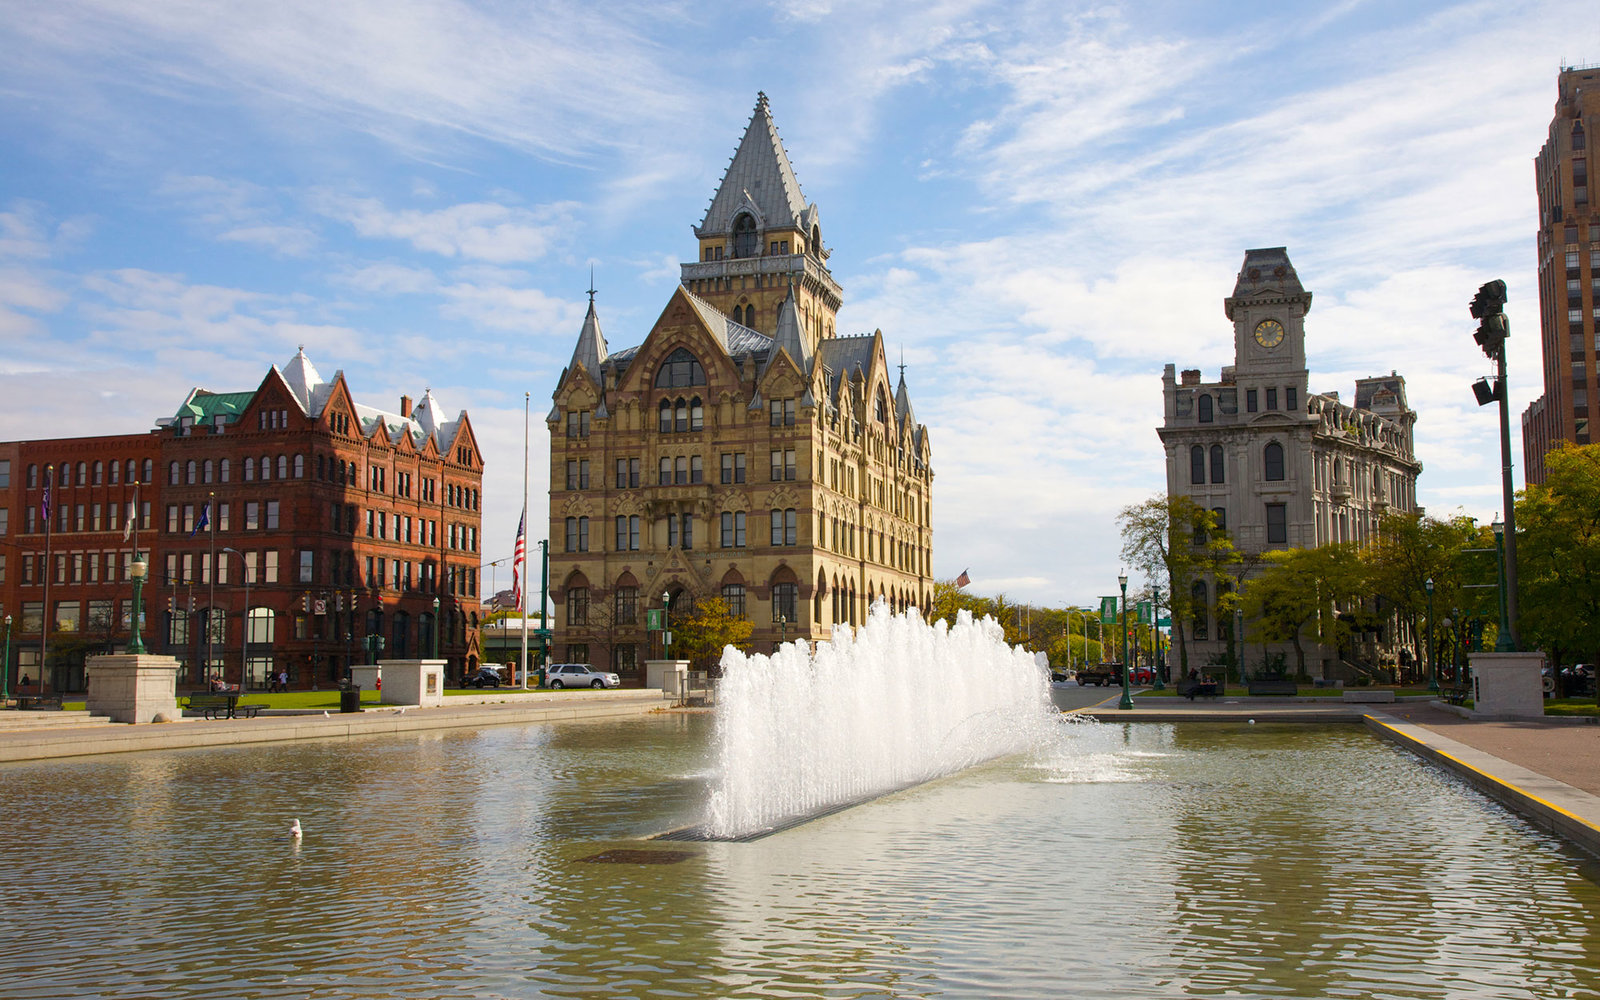 Clinton Square, Syracuse, Onondaga County, Central New York, New York, USA.